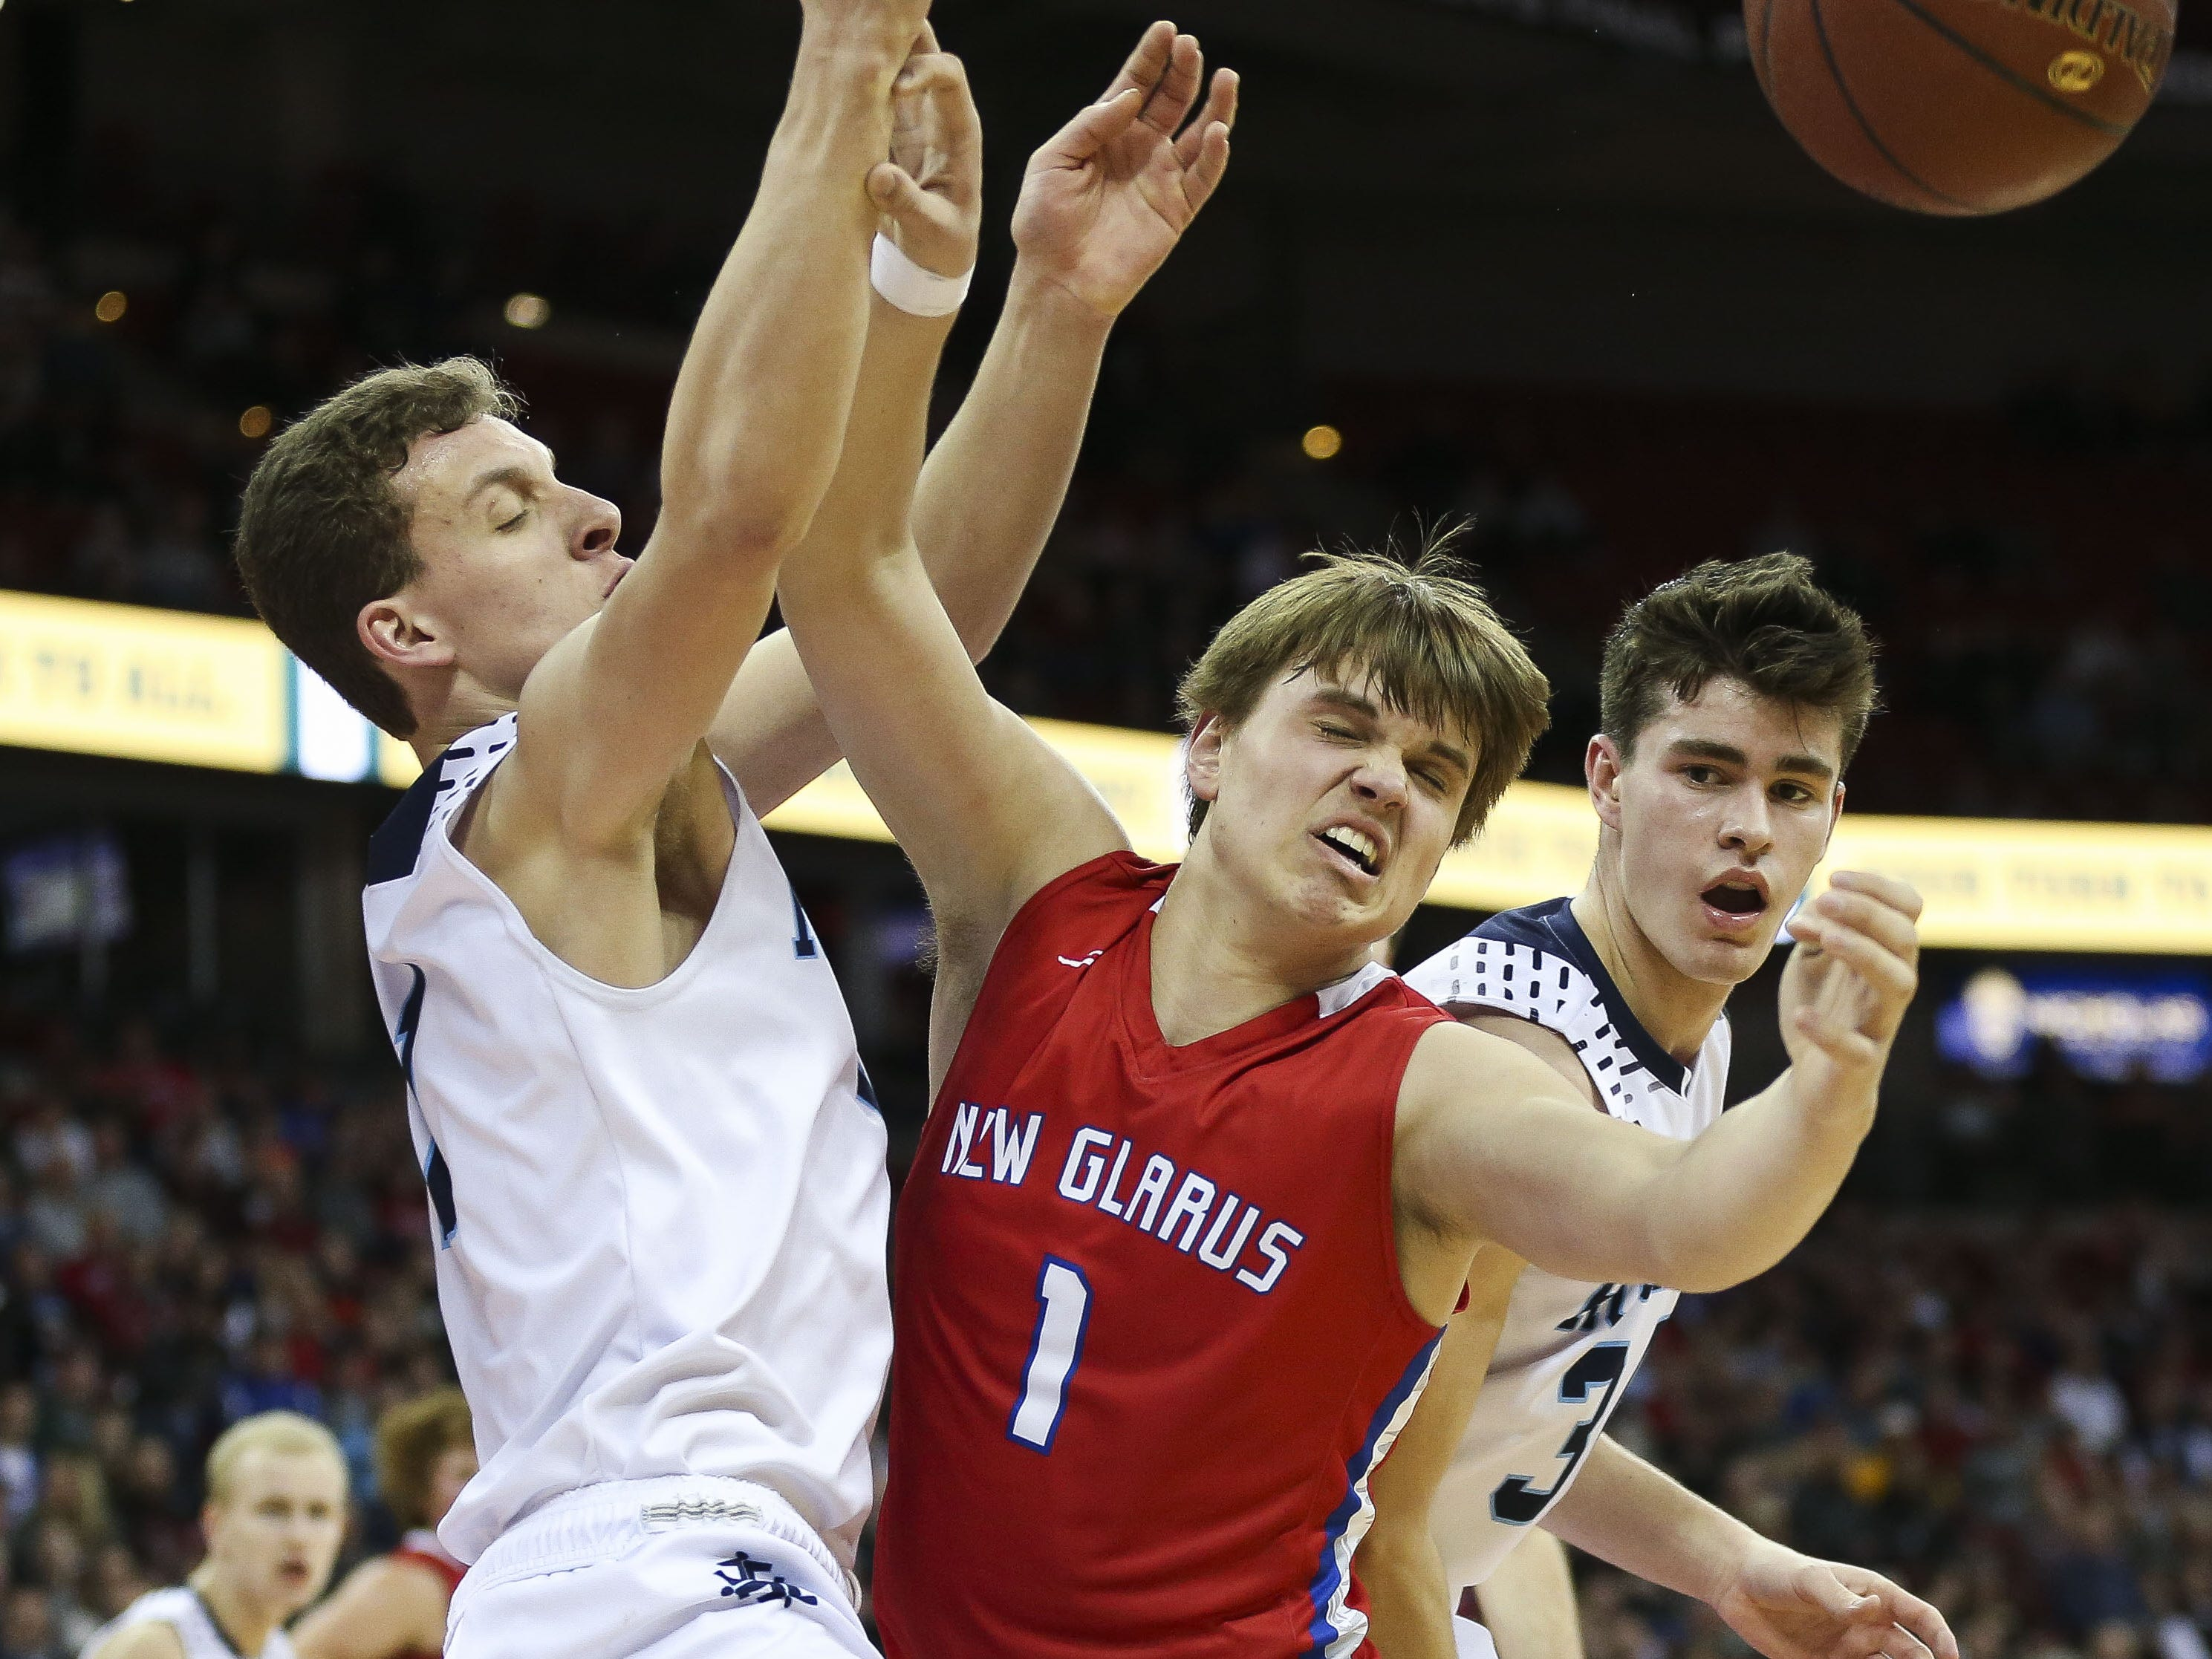 Roncalli High School's Daniel Burgarino (1) and New Glarus High School's Mason Martinson (1) fight for a rebound in a Division 4 boys basketball state semifinal on Thursday, March 14, 2019, at the Kohl Center in Madison, Wis. New Glarus won the game, 44-41, to advance to Saturday's championship game. Tork Mason/USA TODAY NETWORK-Wisconsin